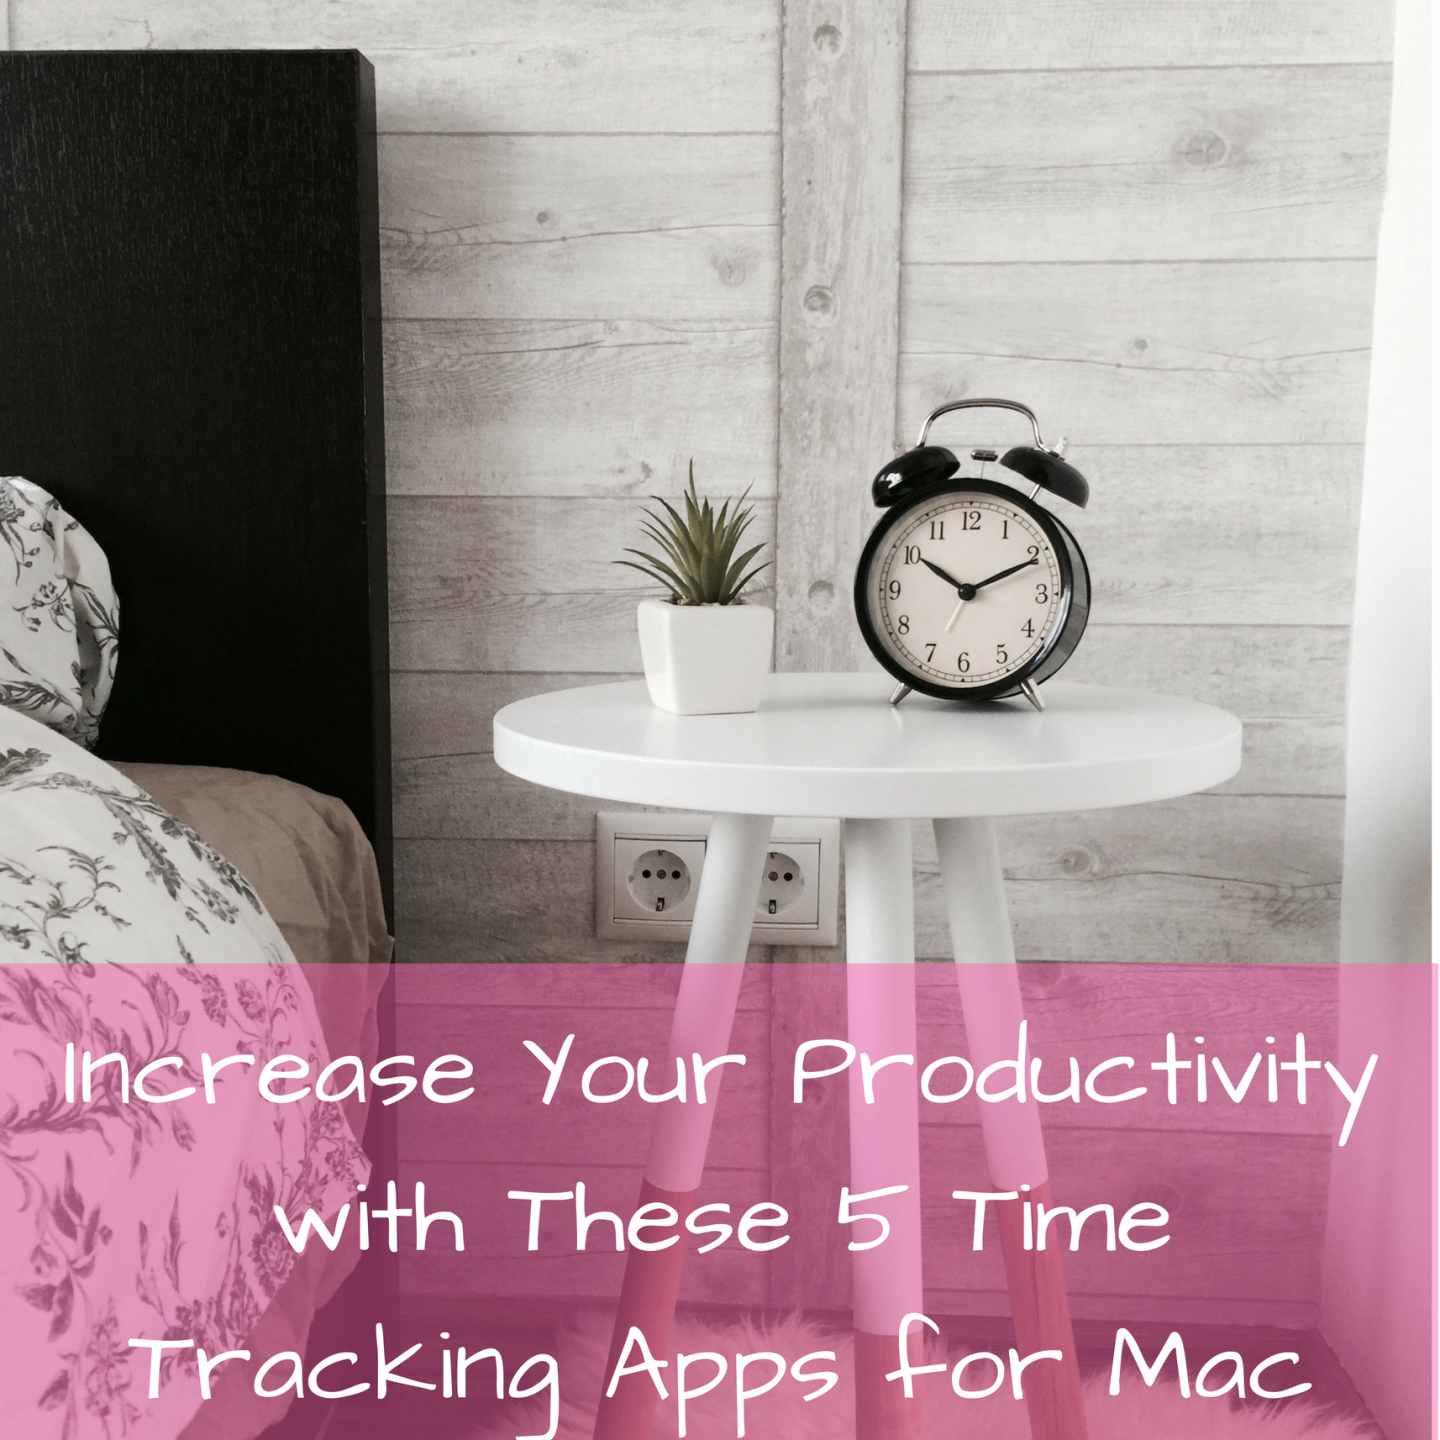 5 Free Time Tracking Apps for Mac to Help You Increase Productivity